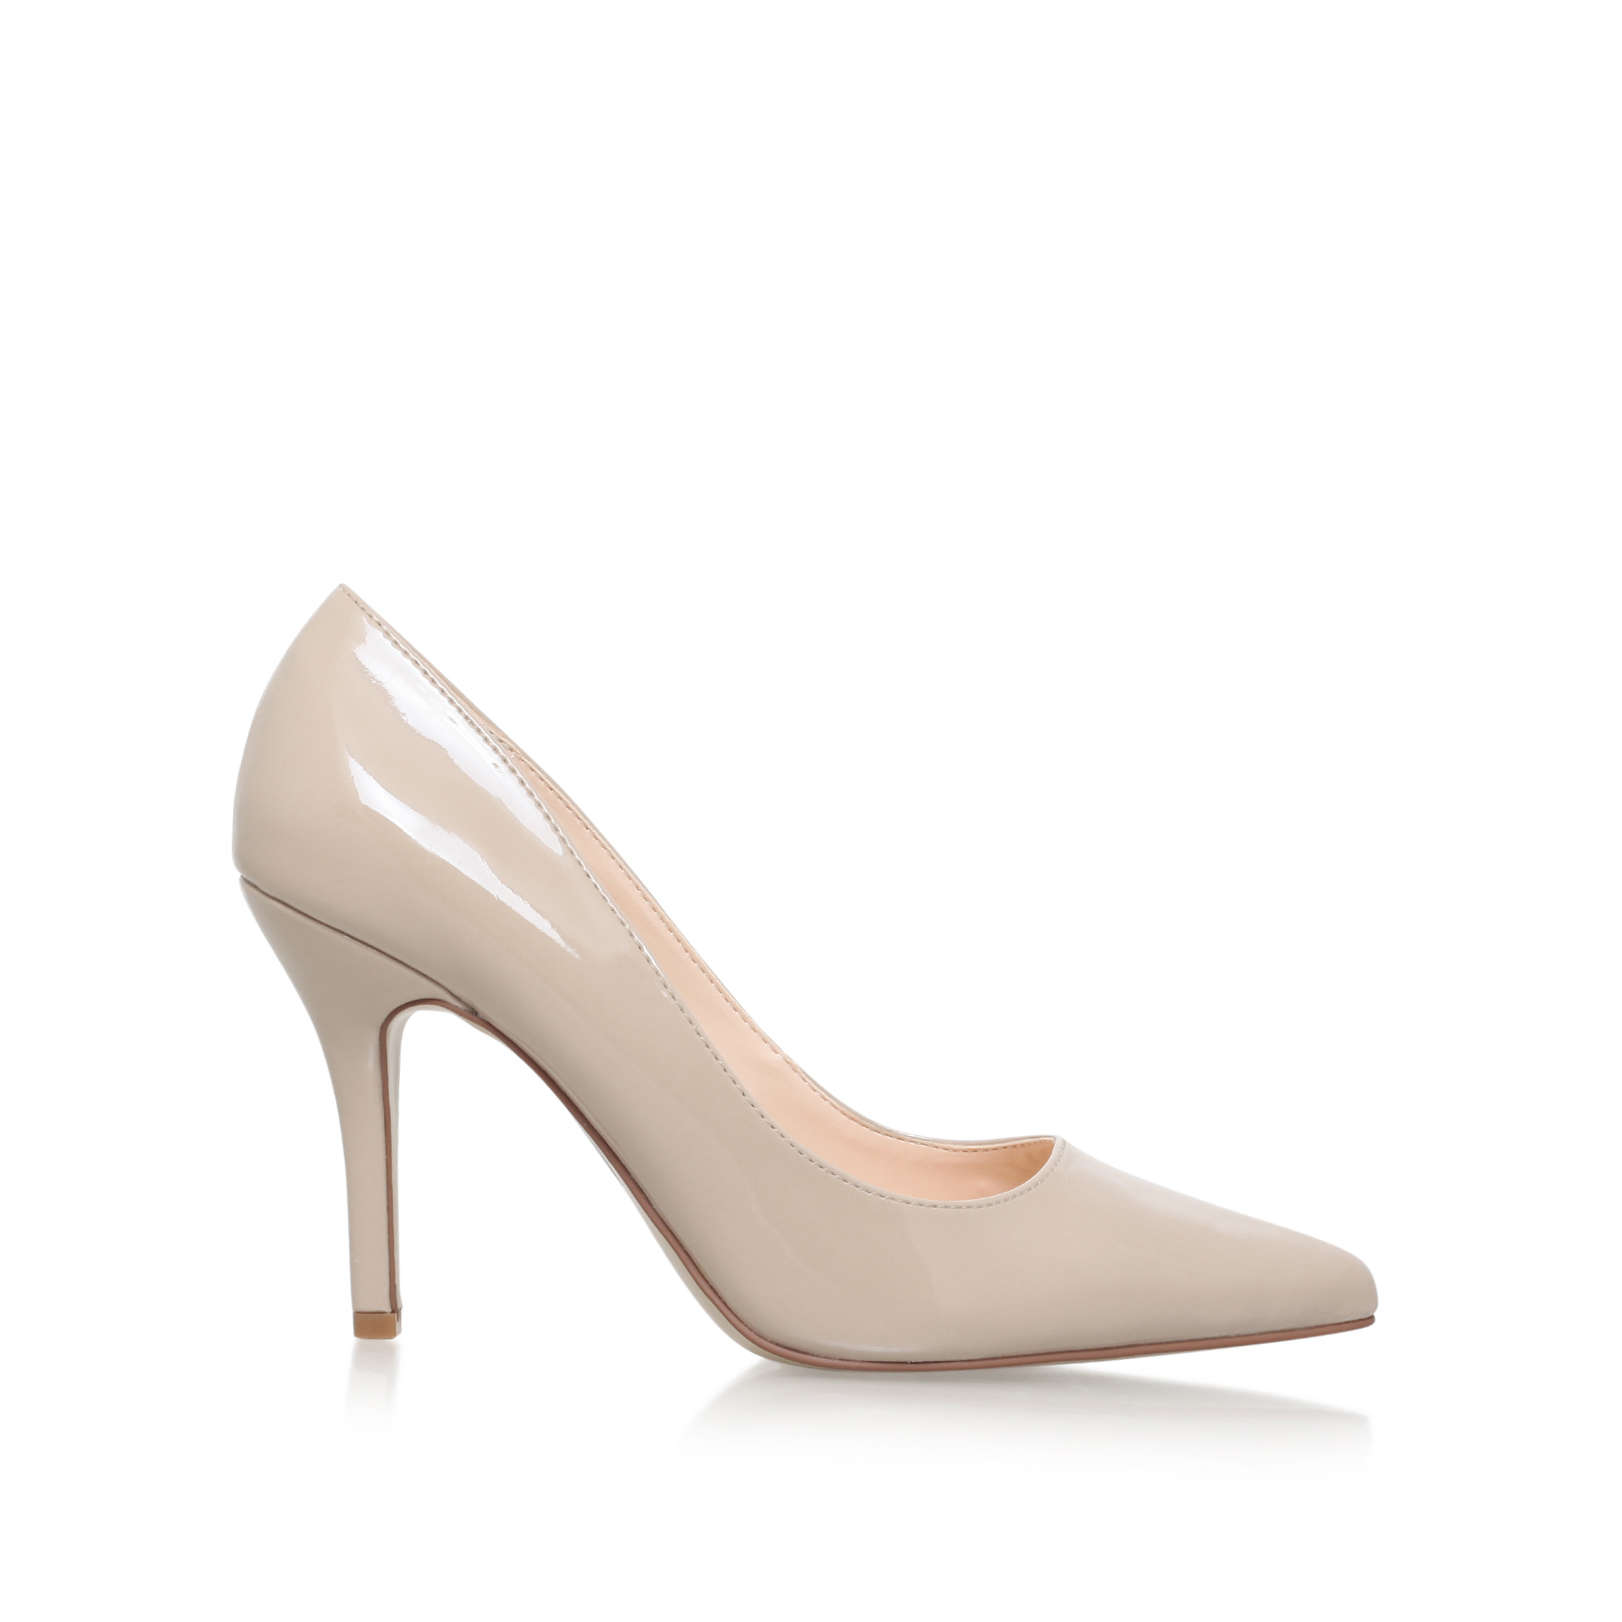 FLAGSHIP Nine West Flagship Nude Patent High Heel Court Shoes by NINE WEST